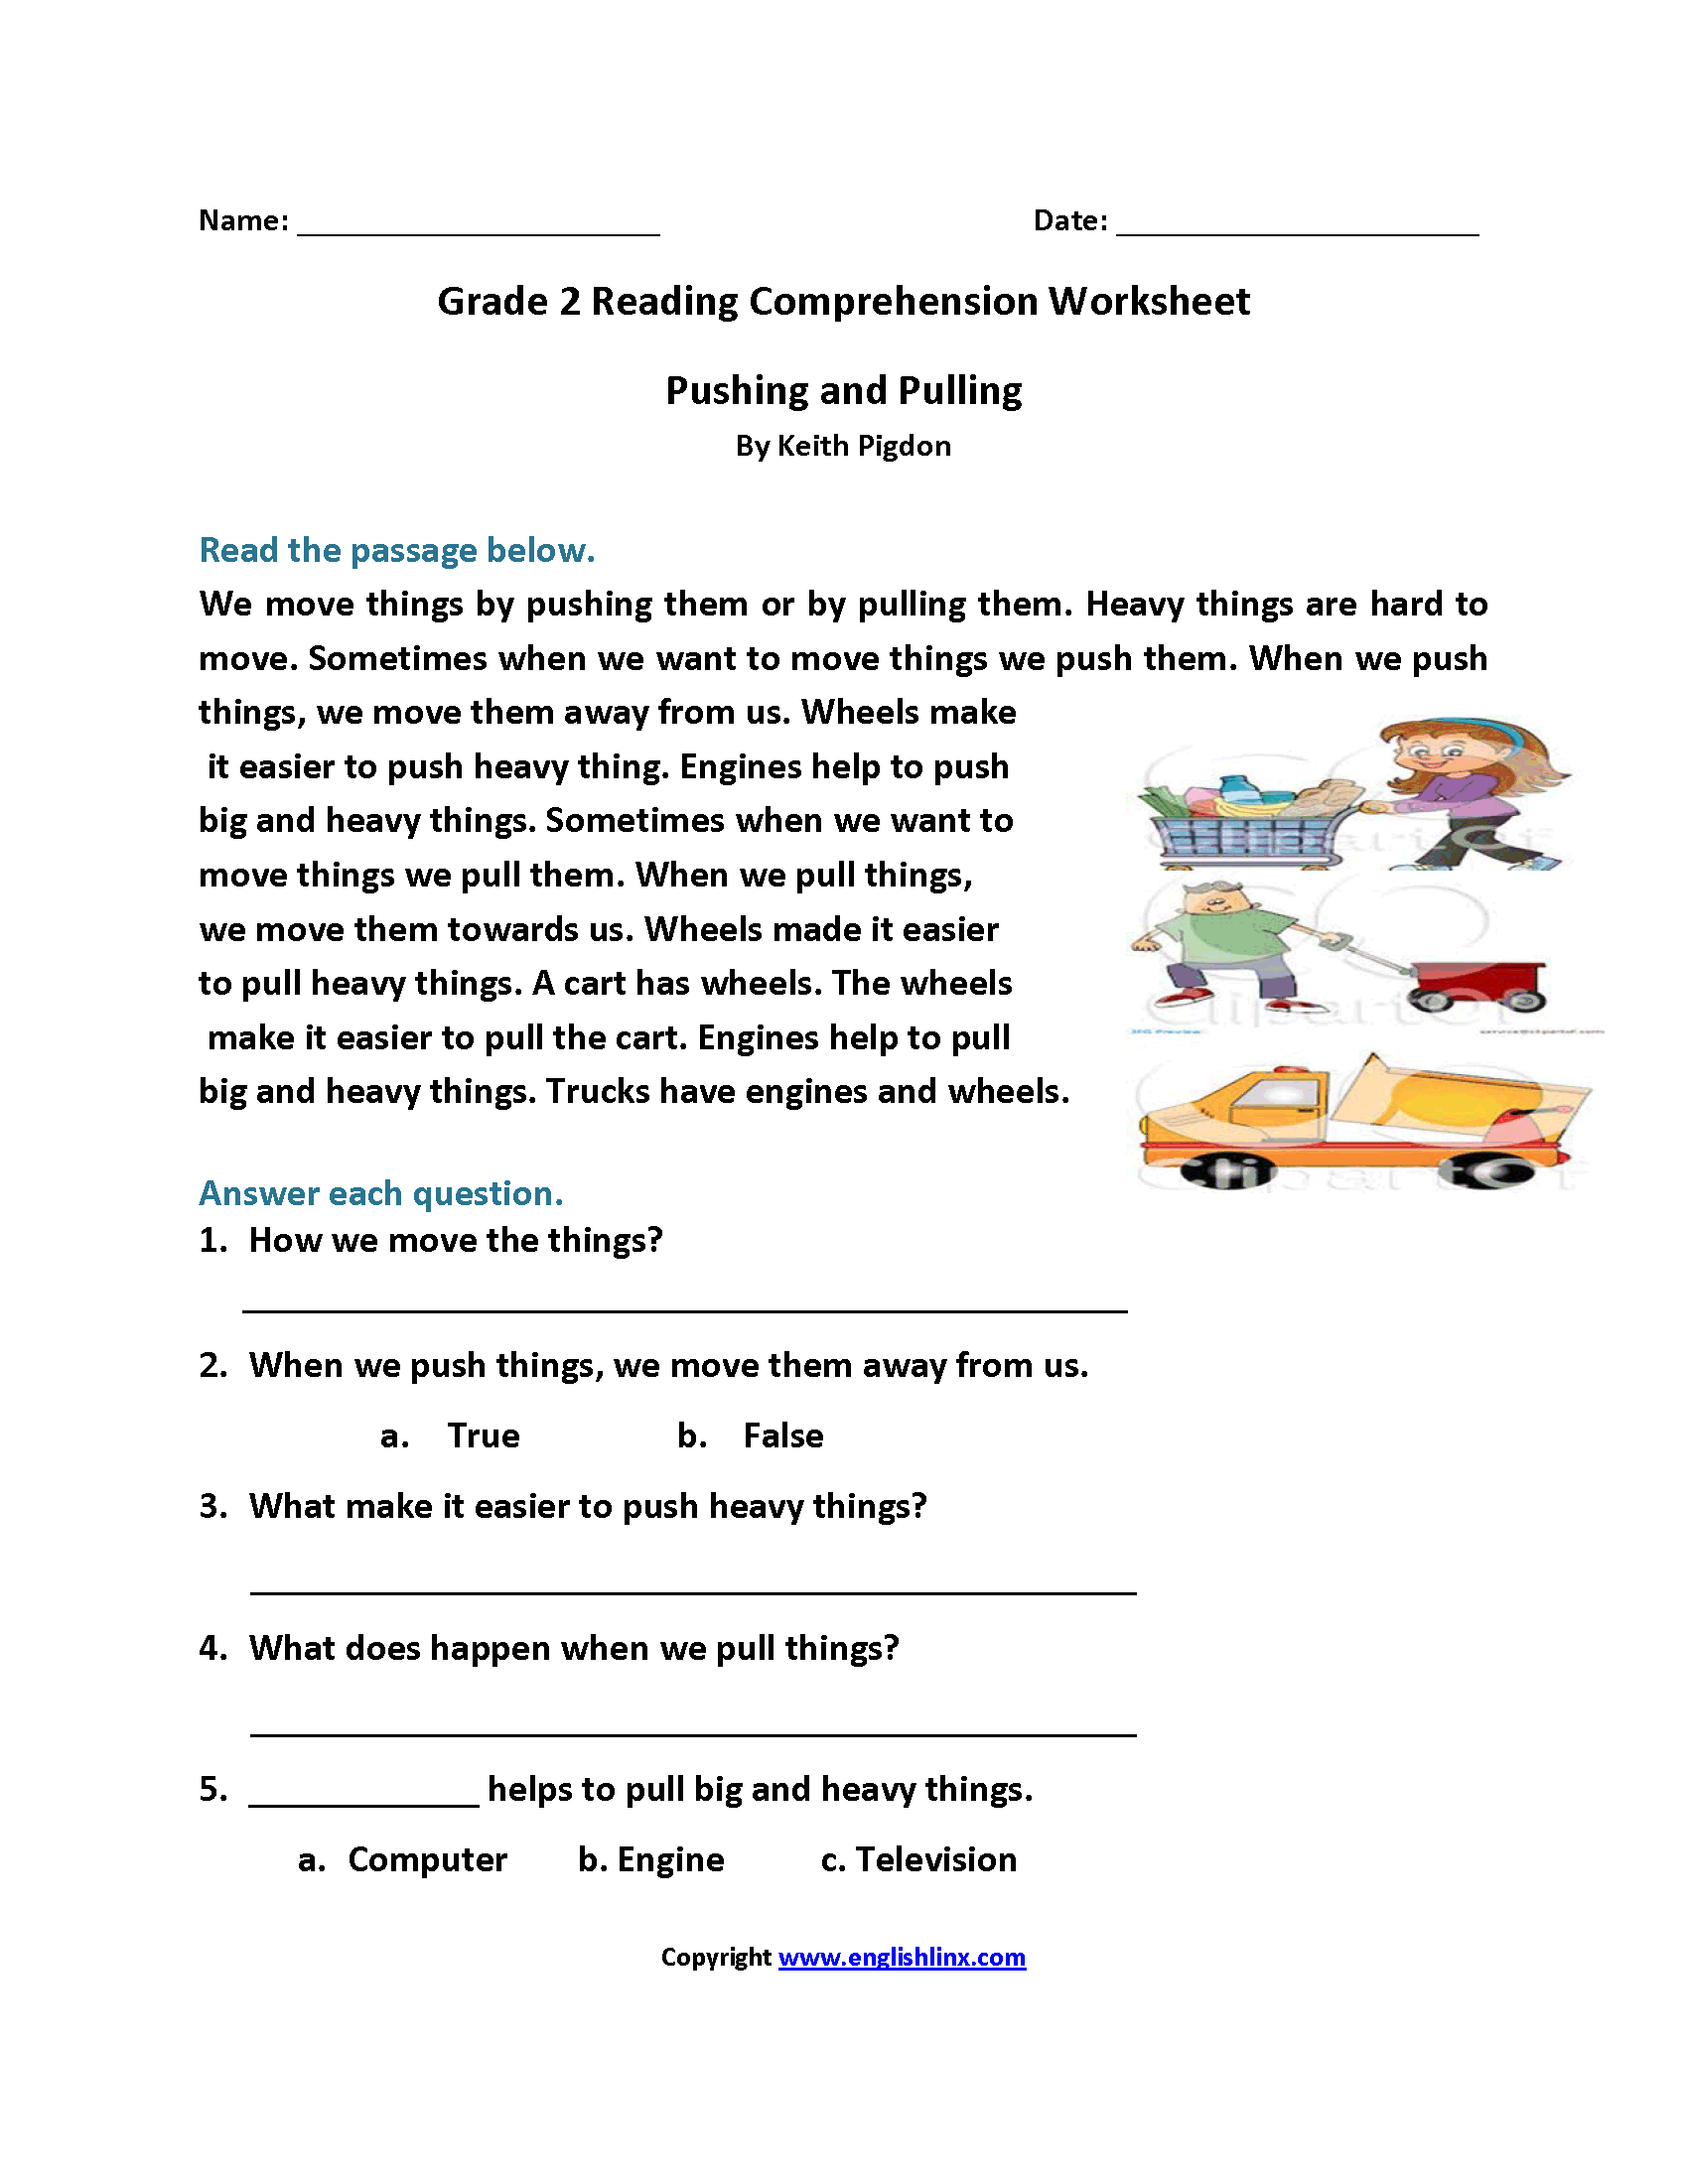 - Pushing And Pulling Second Grade Reading Worksheets (With Images